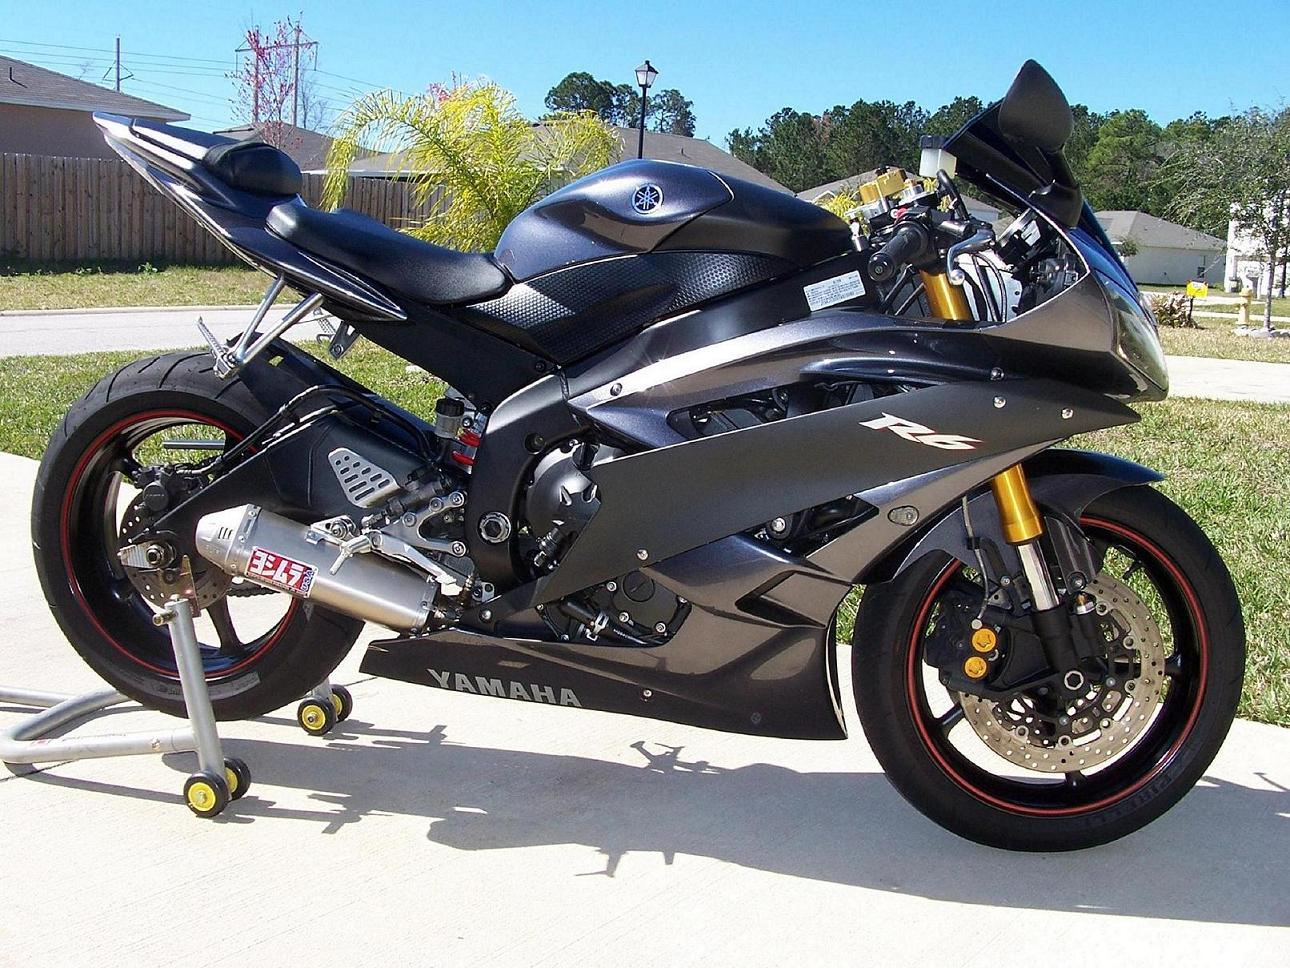 Vand yamaha yzf r6 an 2008 okazie pictures to pin on pinterest